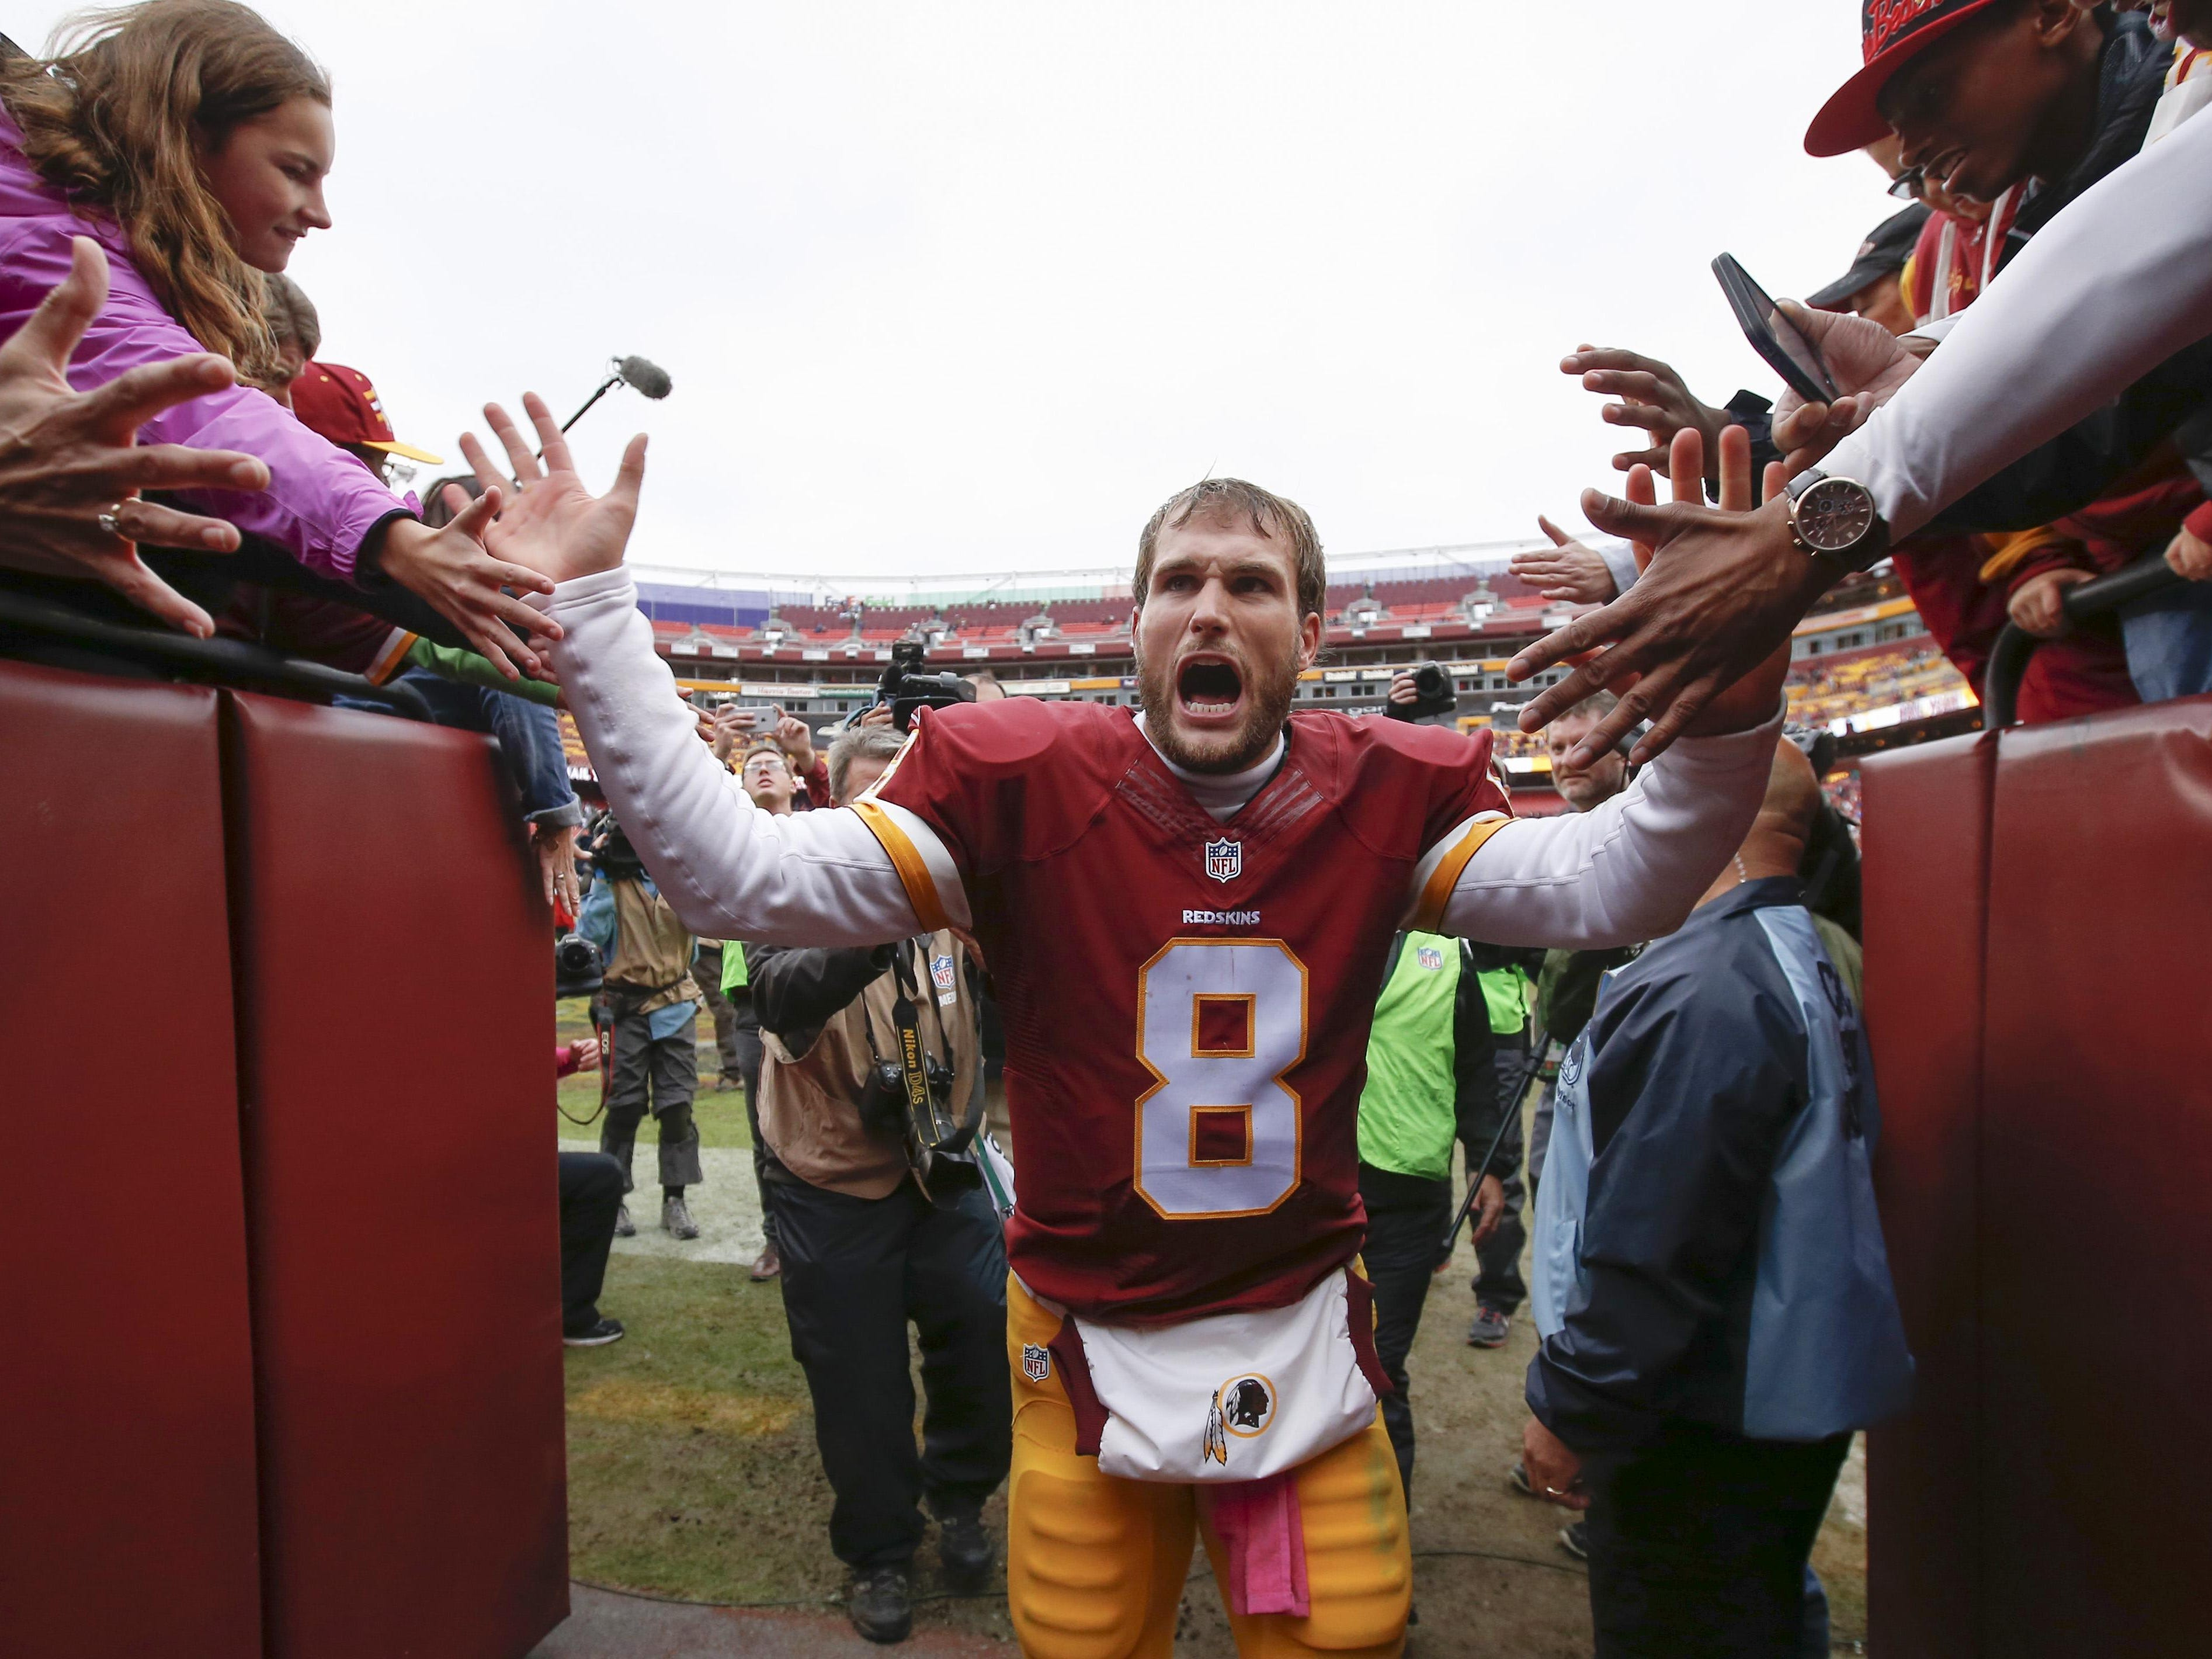 Kirk Cousins celebrates Oct. 4 as he leaves the field after the Redskins beat the Eagles, 23-20. He threw the winning TD with 26 seconds left.